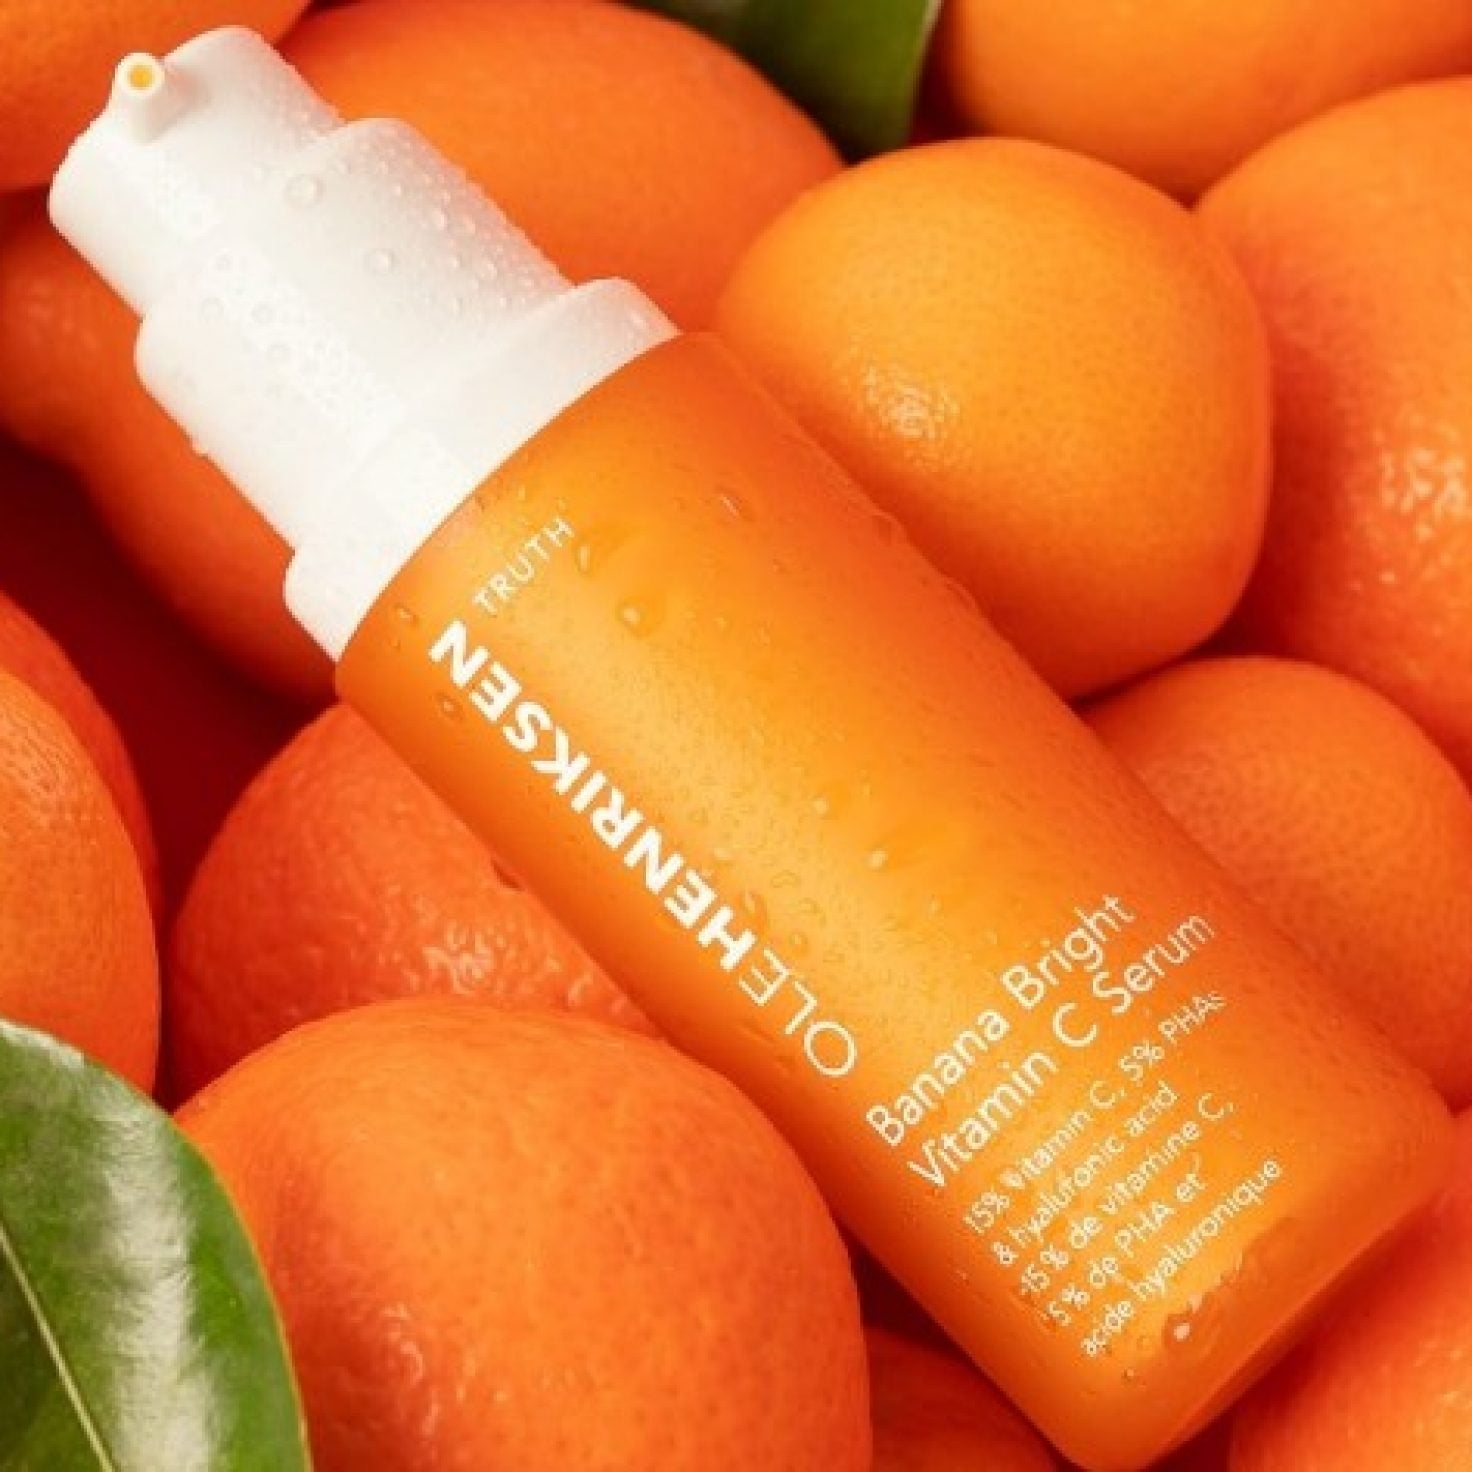 11 New Vitamin C-Infused Products To Get Your Skin Glowing